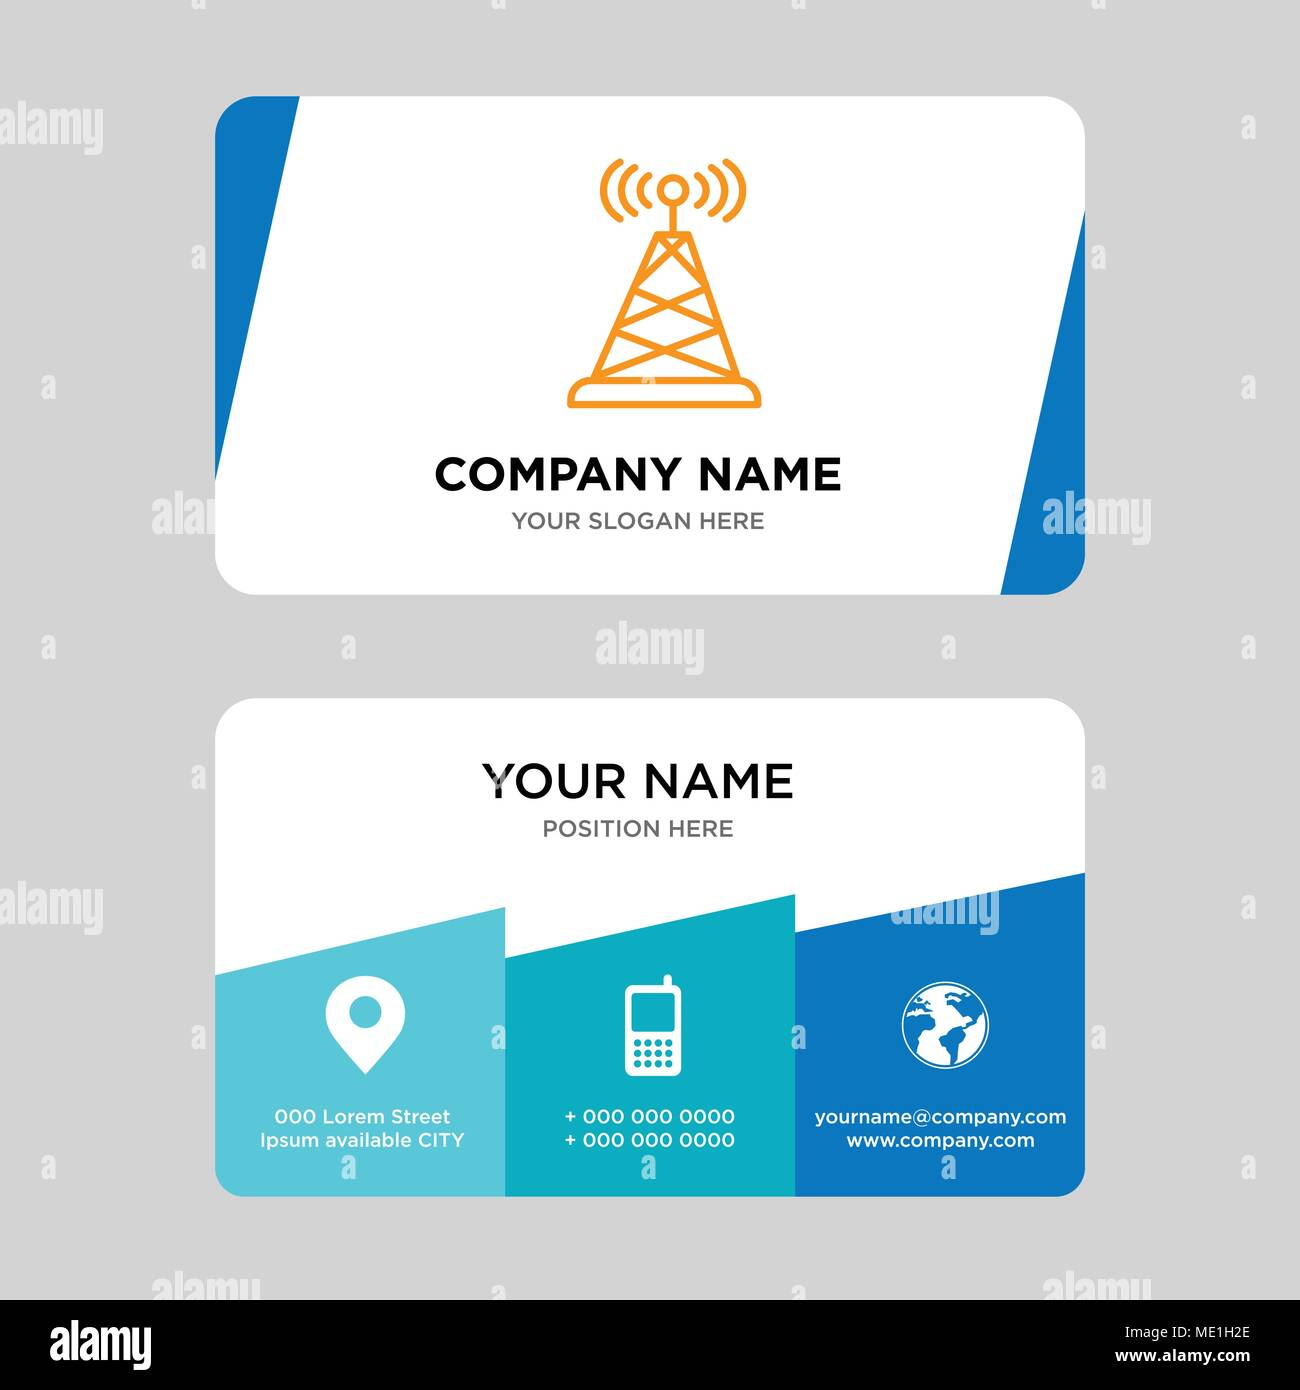 Antenna business card design template, Visiting for your company, Modern Creative and Clean identity Card Vector Illustration - Stock Image